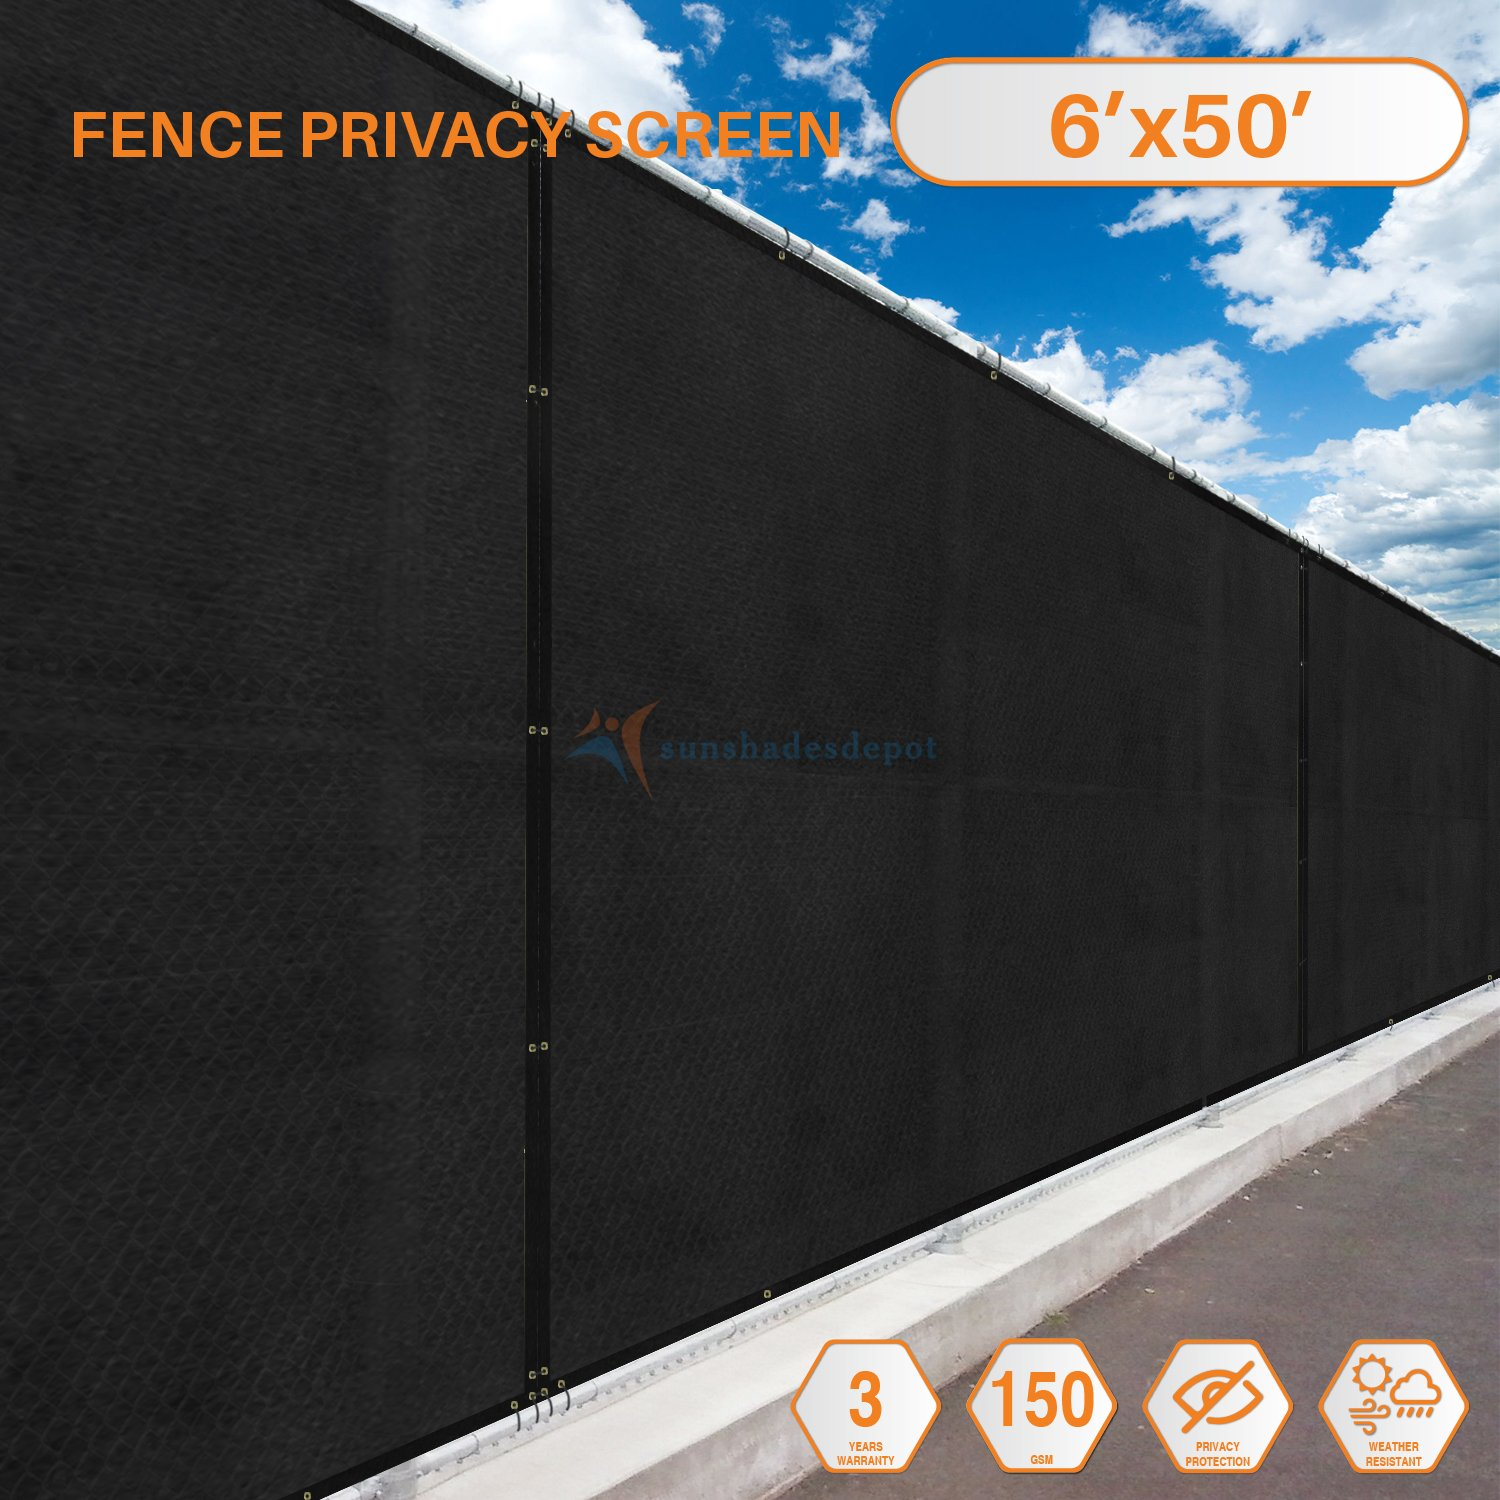 Sunshades Depot SSD650 Privacy Fence Screen Heavy Duty Windscreen Residential Fence Netting Cover 150 GSM 88% Privacy Blockage 06' x 50', Black